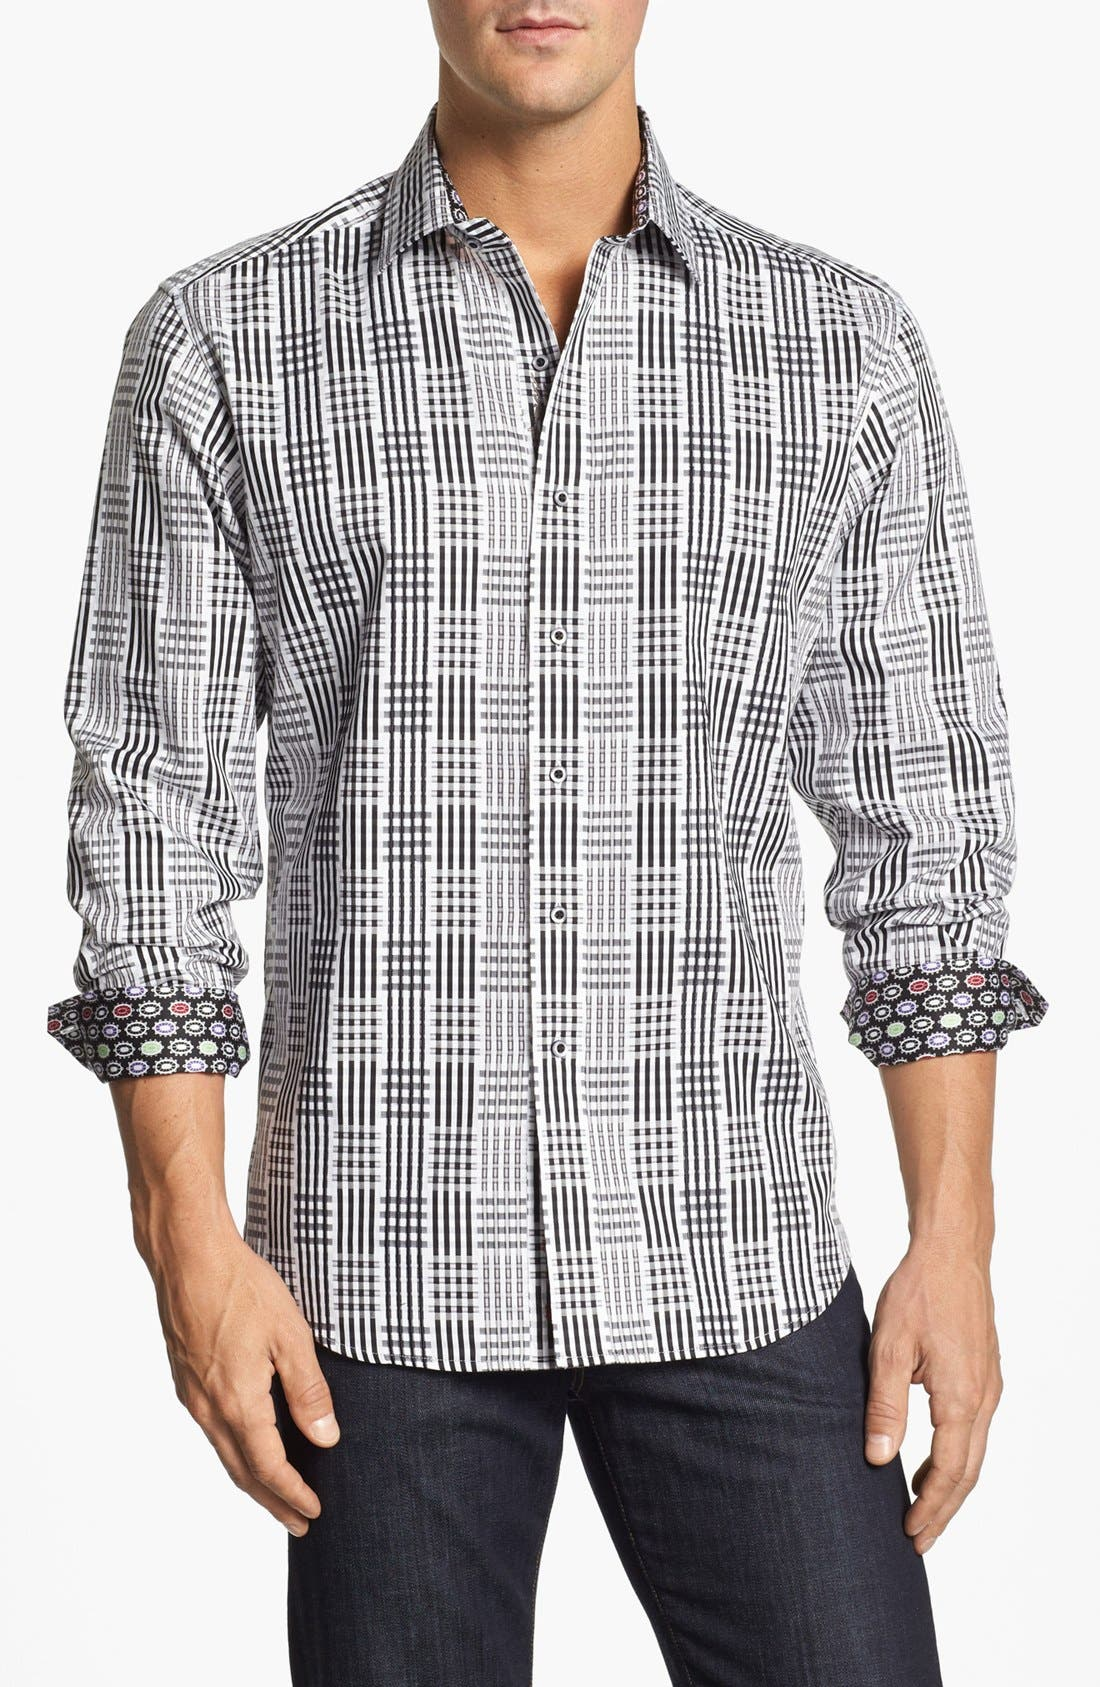 Alternate Image 1 Selected - Robert Graham 'Henri' Sport Shirt